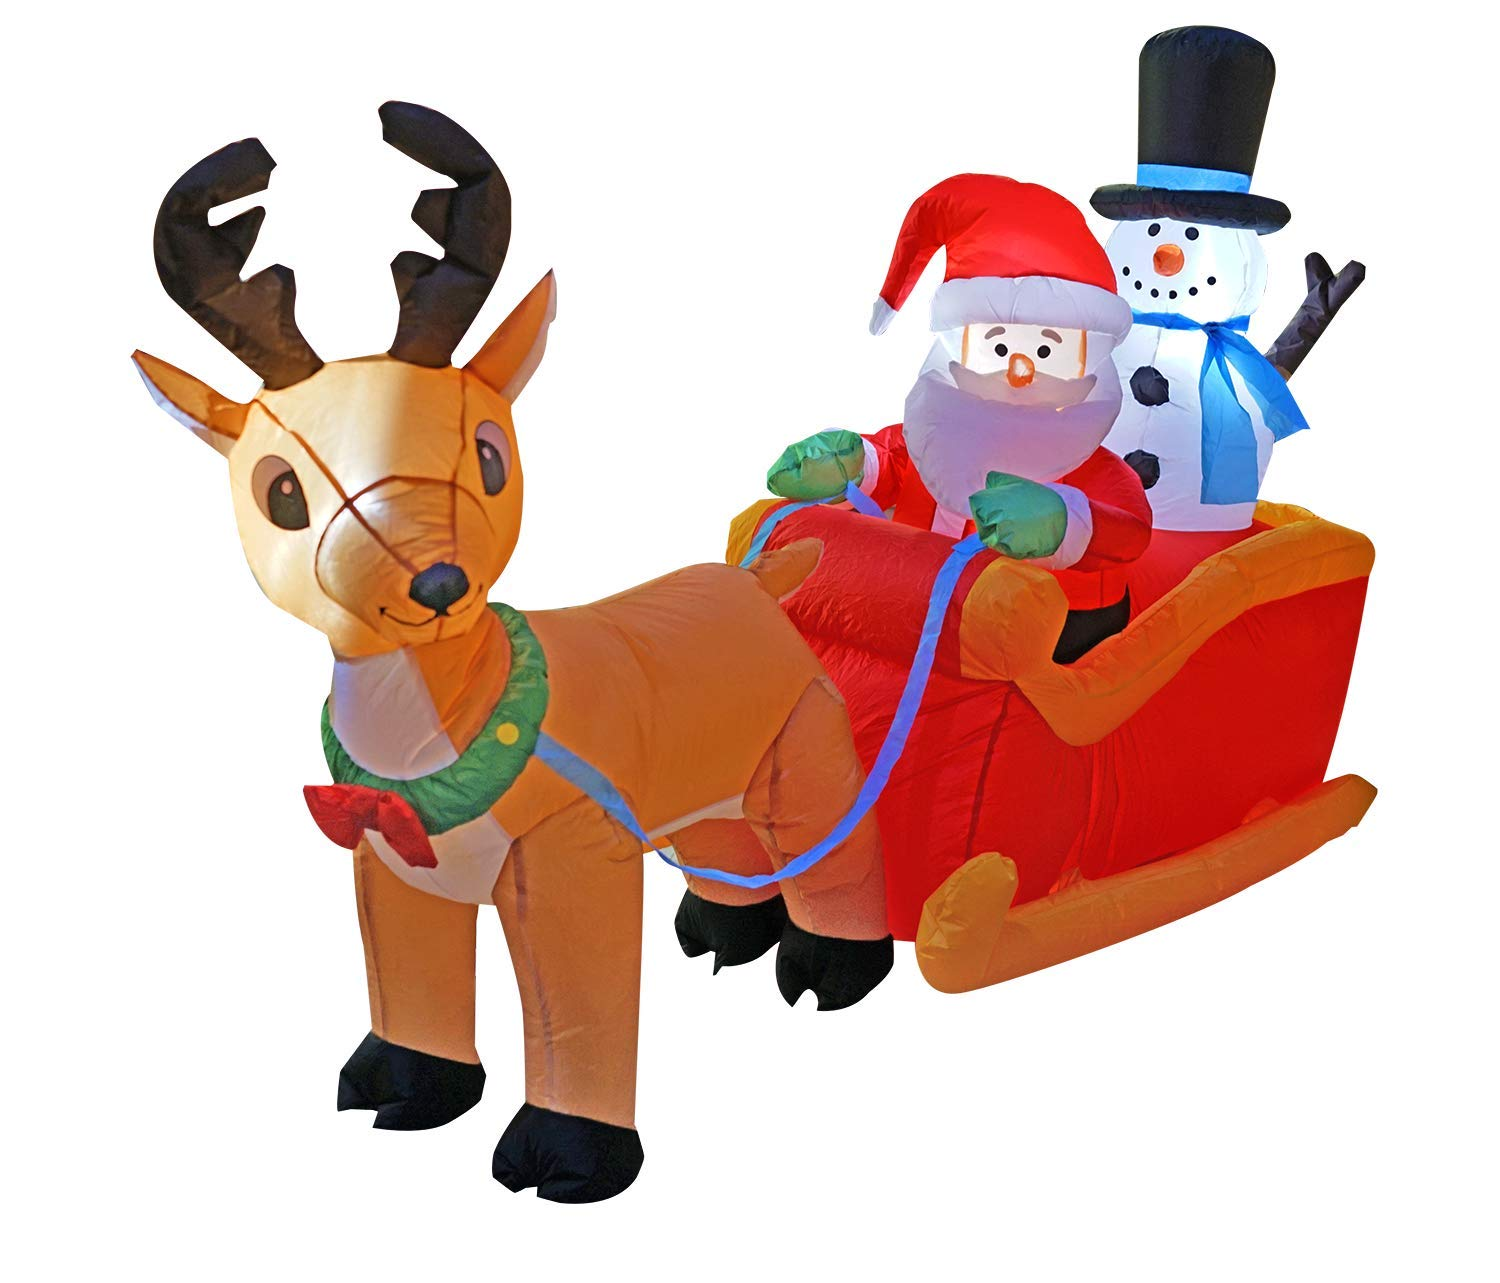 SEASONBLOW 6.6 Ft Christmas Reindeer Pull The Sleigh Take Santa Claus and Snowman,Inflatables Decorations Indoor Outdoor for Party Home Yard Lawn